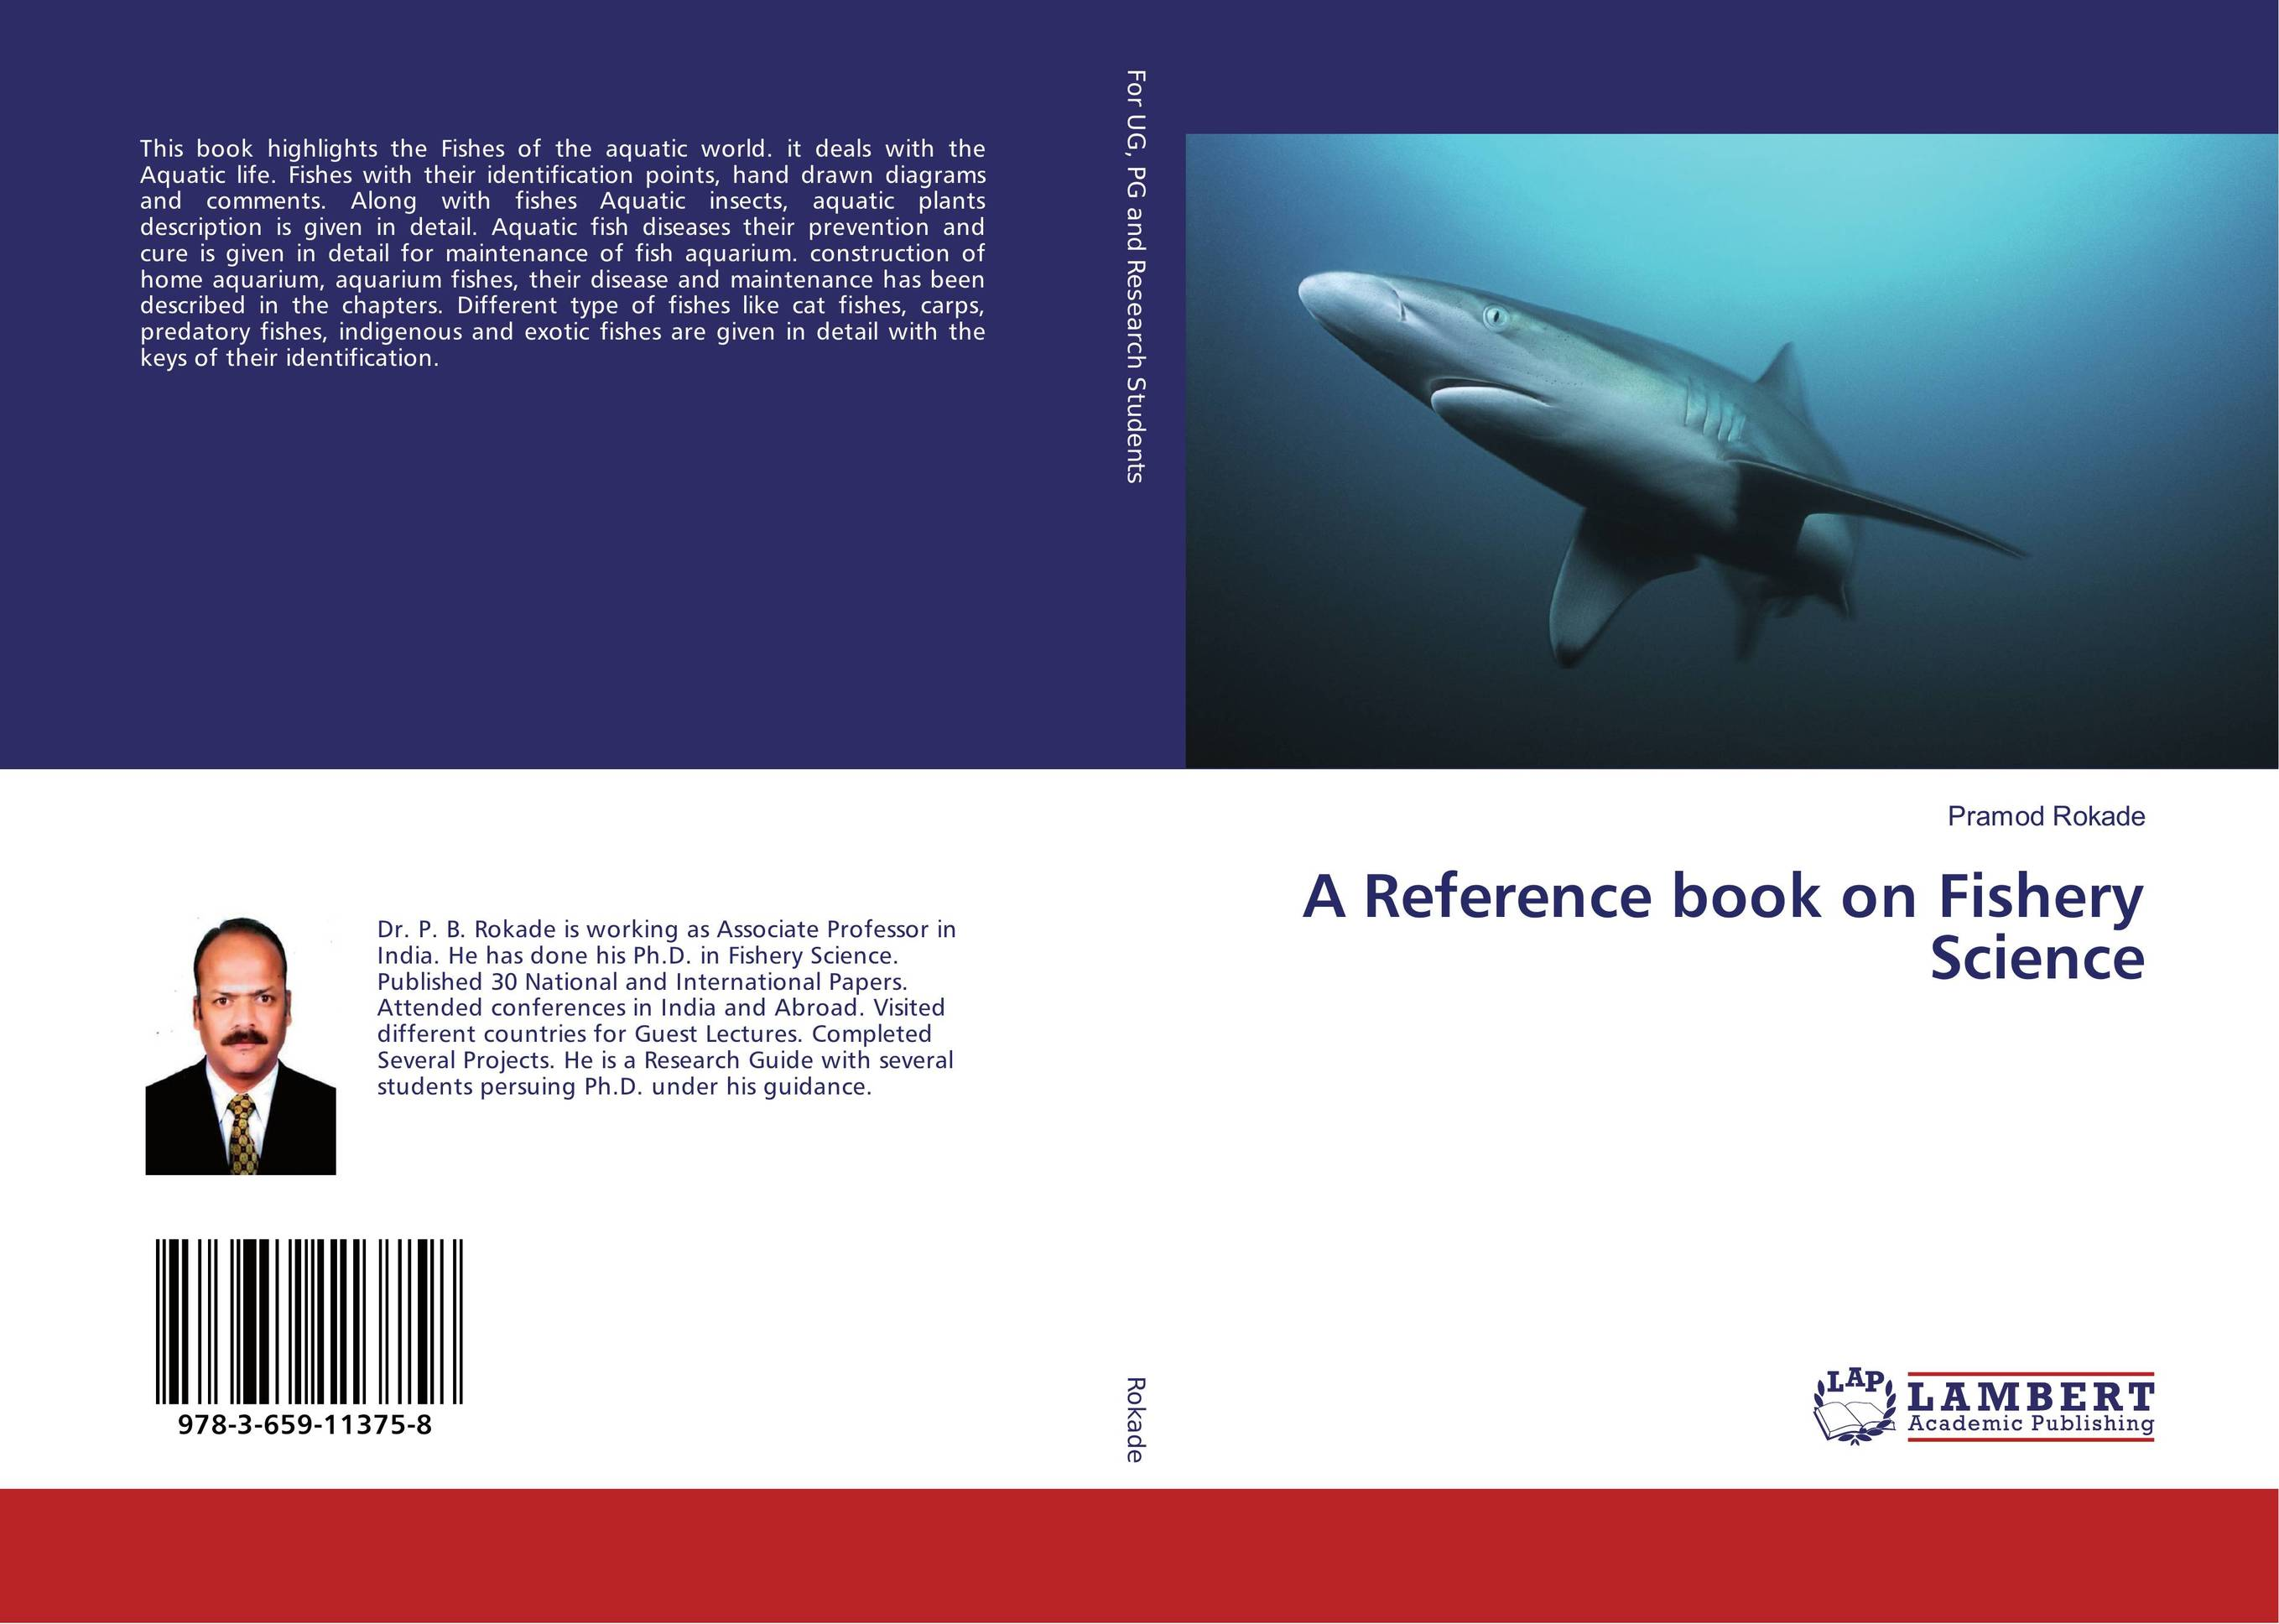 A Reference book on Fishery Science